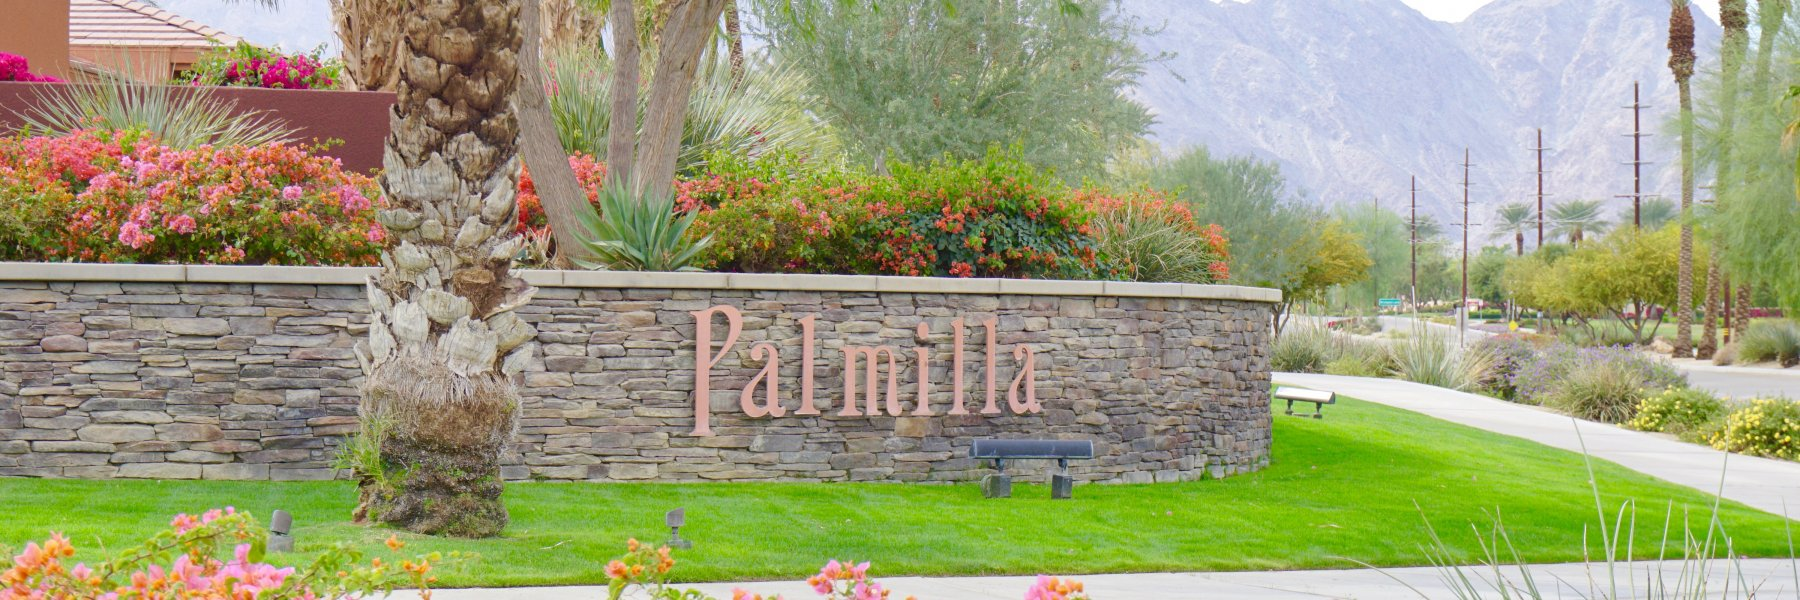 Palmilla is a community of homes in La Quinta California